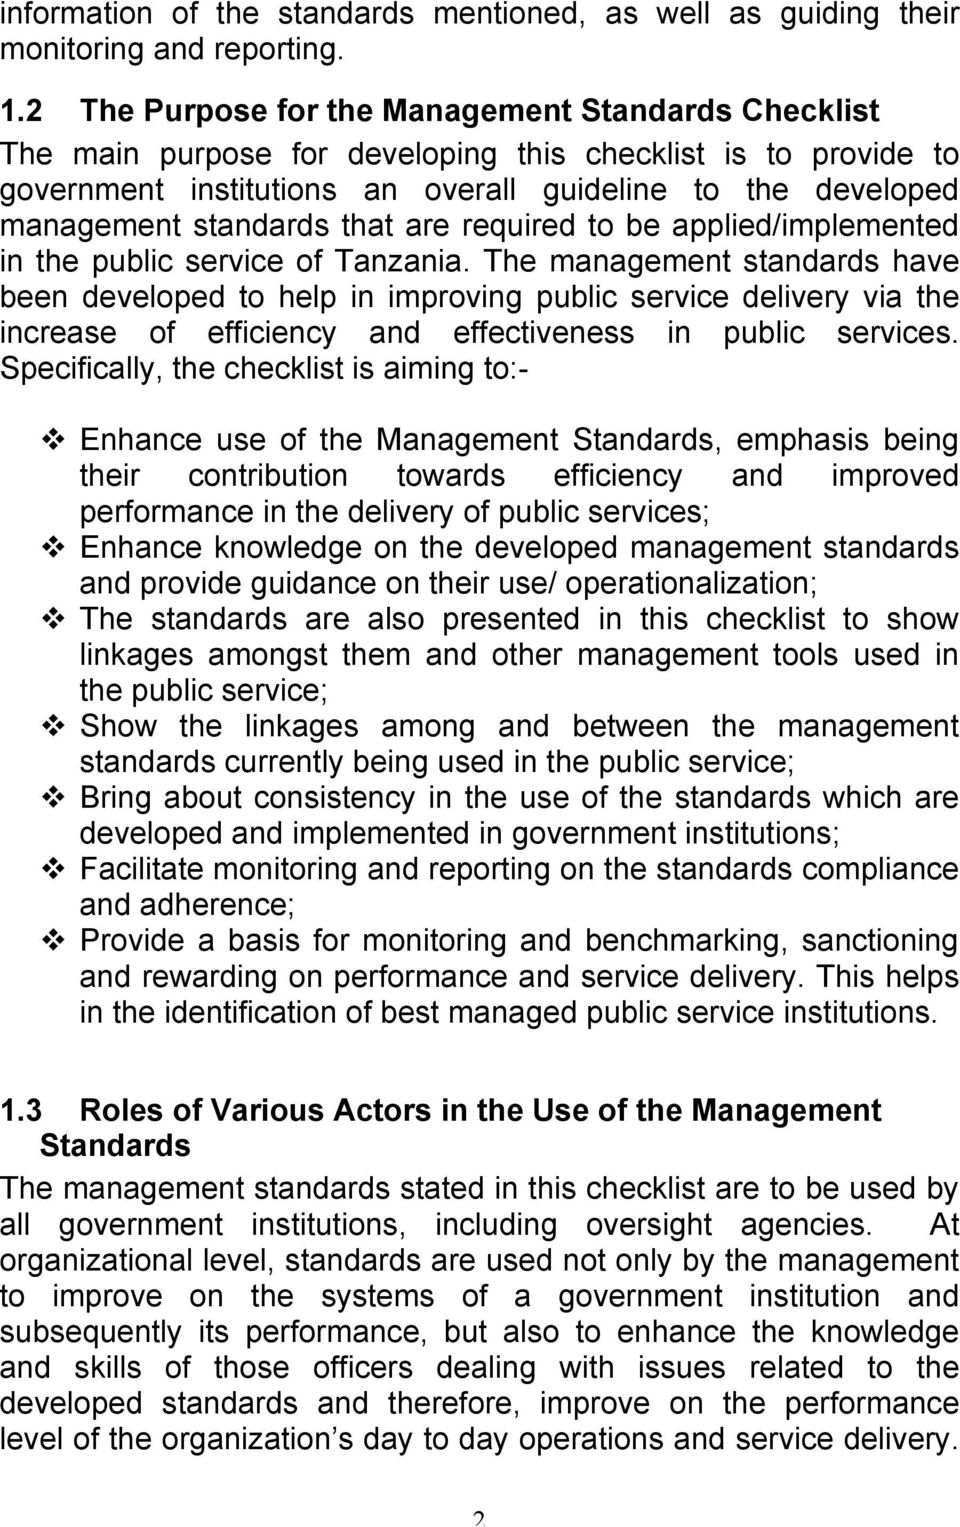 that are required to be applied/implemented in the public service of Tanzania.